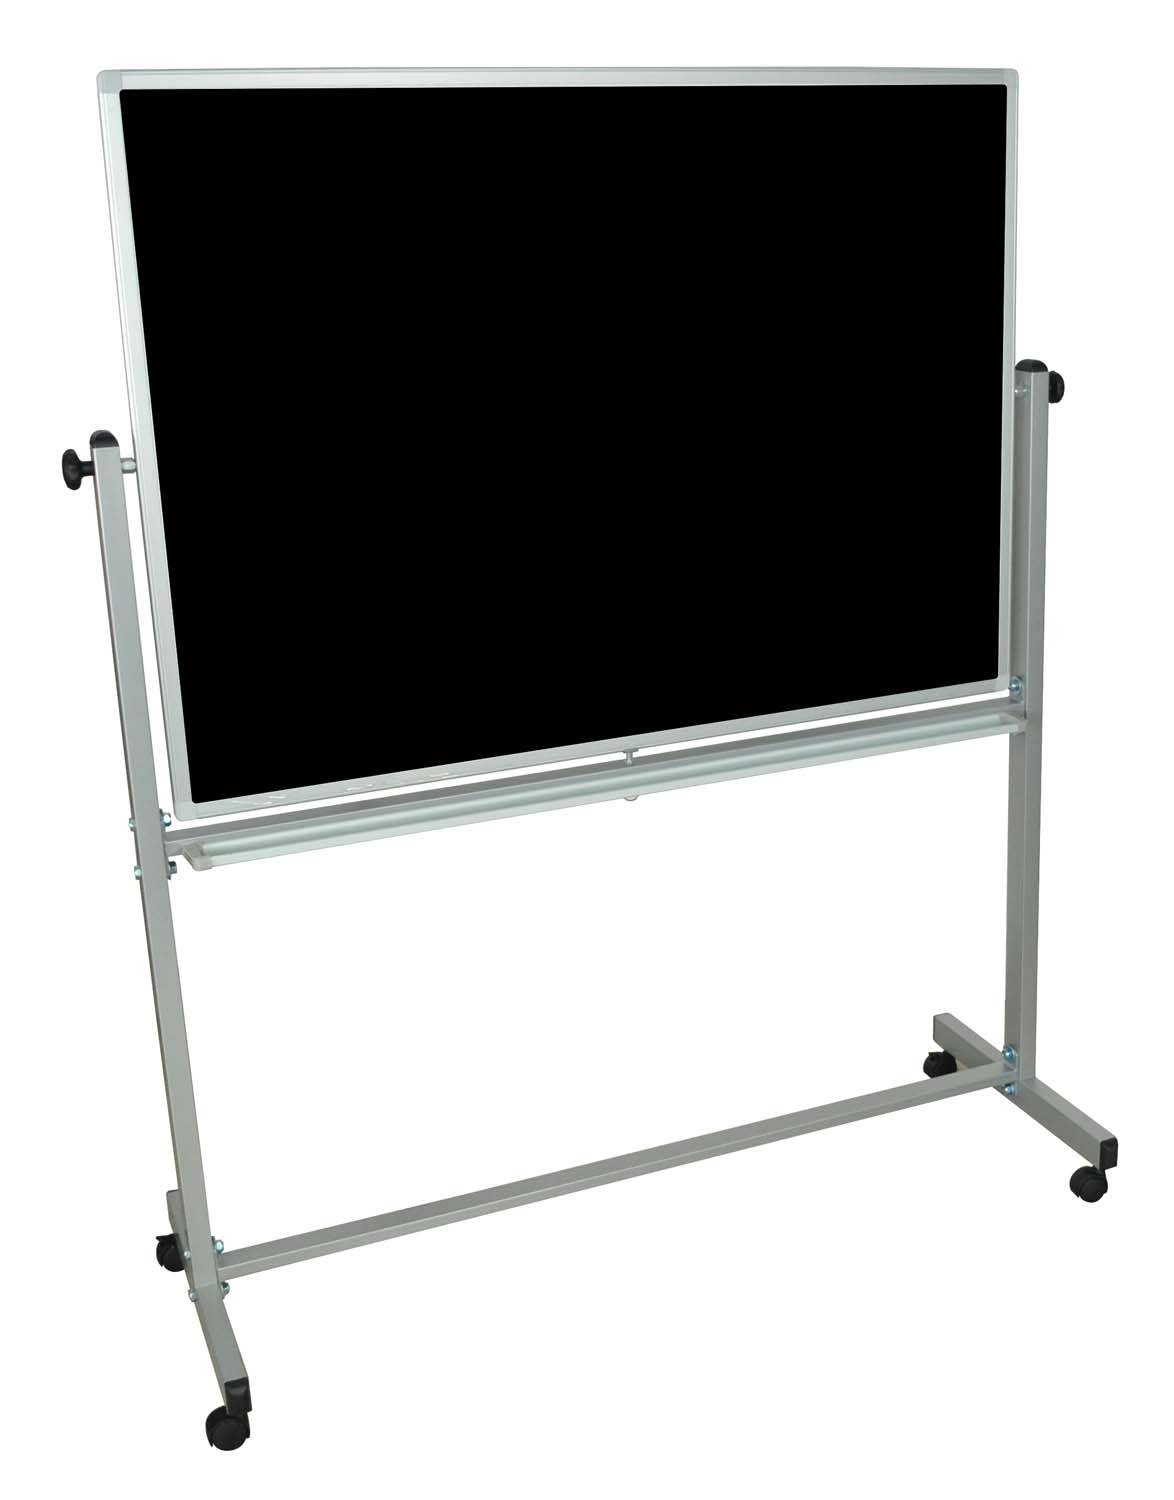 Offex Mobile Double Sided Magnetic Reversible White Board / Chalk Board 48